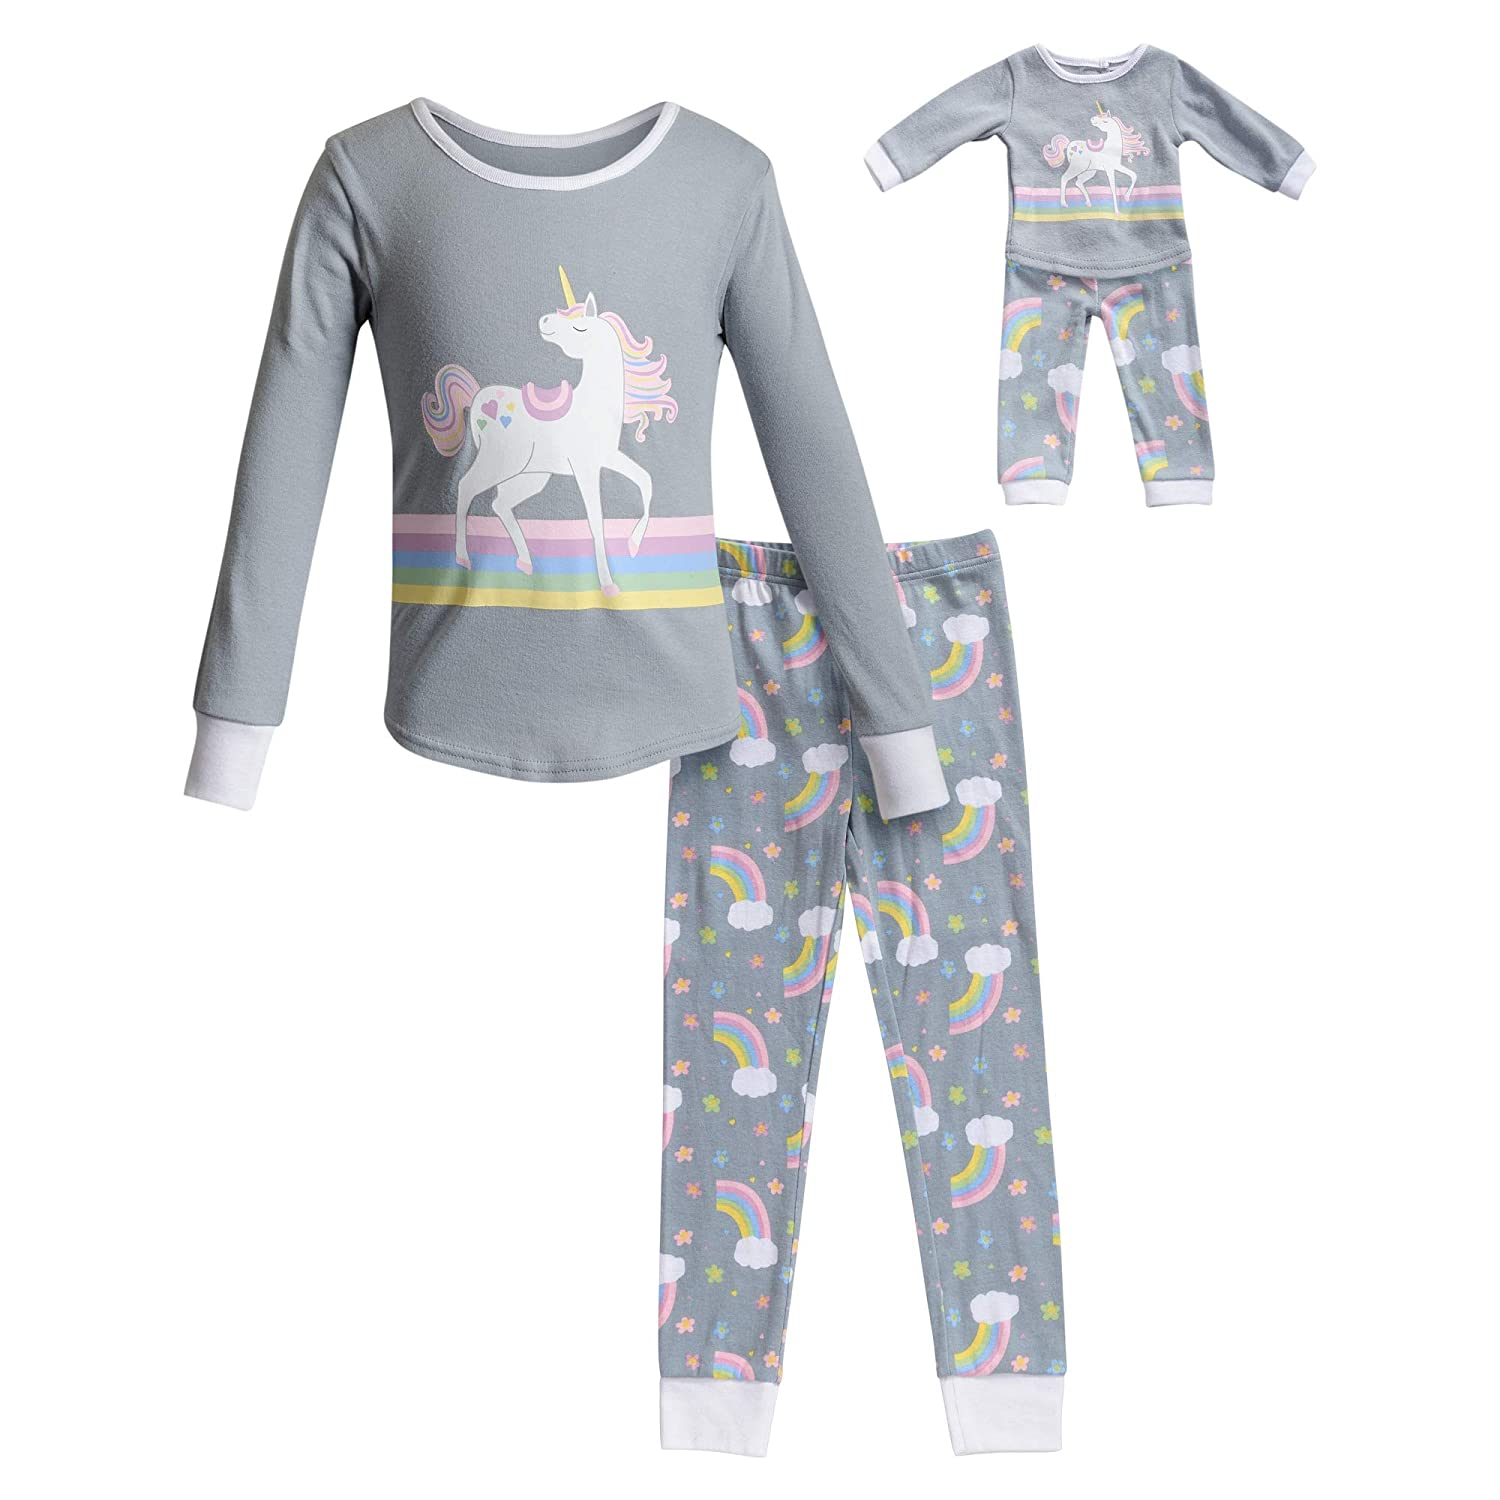 Dollie   Me Girls  Apparel Snug Fit Sleepwear Set and Matching Doll Outfit  in c48818bed